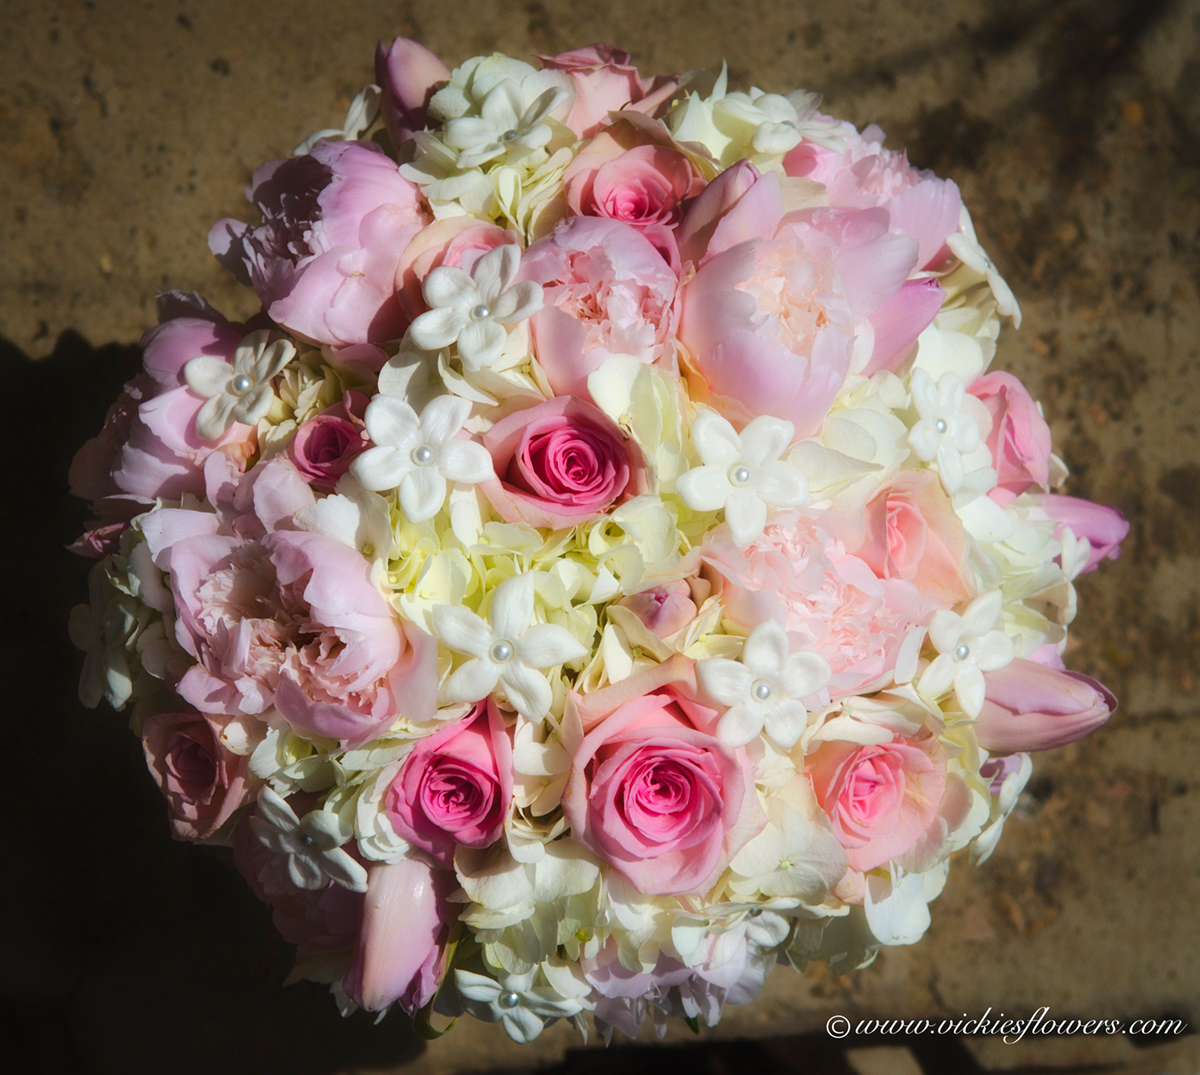 wb 016 beautiful photograph of a pink and pastel colored wedding bouquet with white stephanotis pink roses pink garden roses white hydrangea